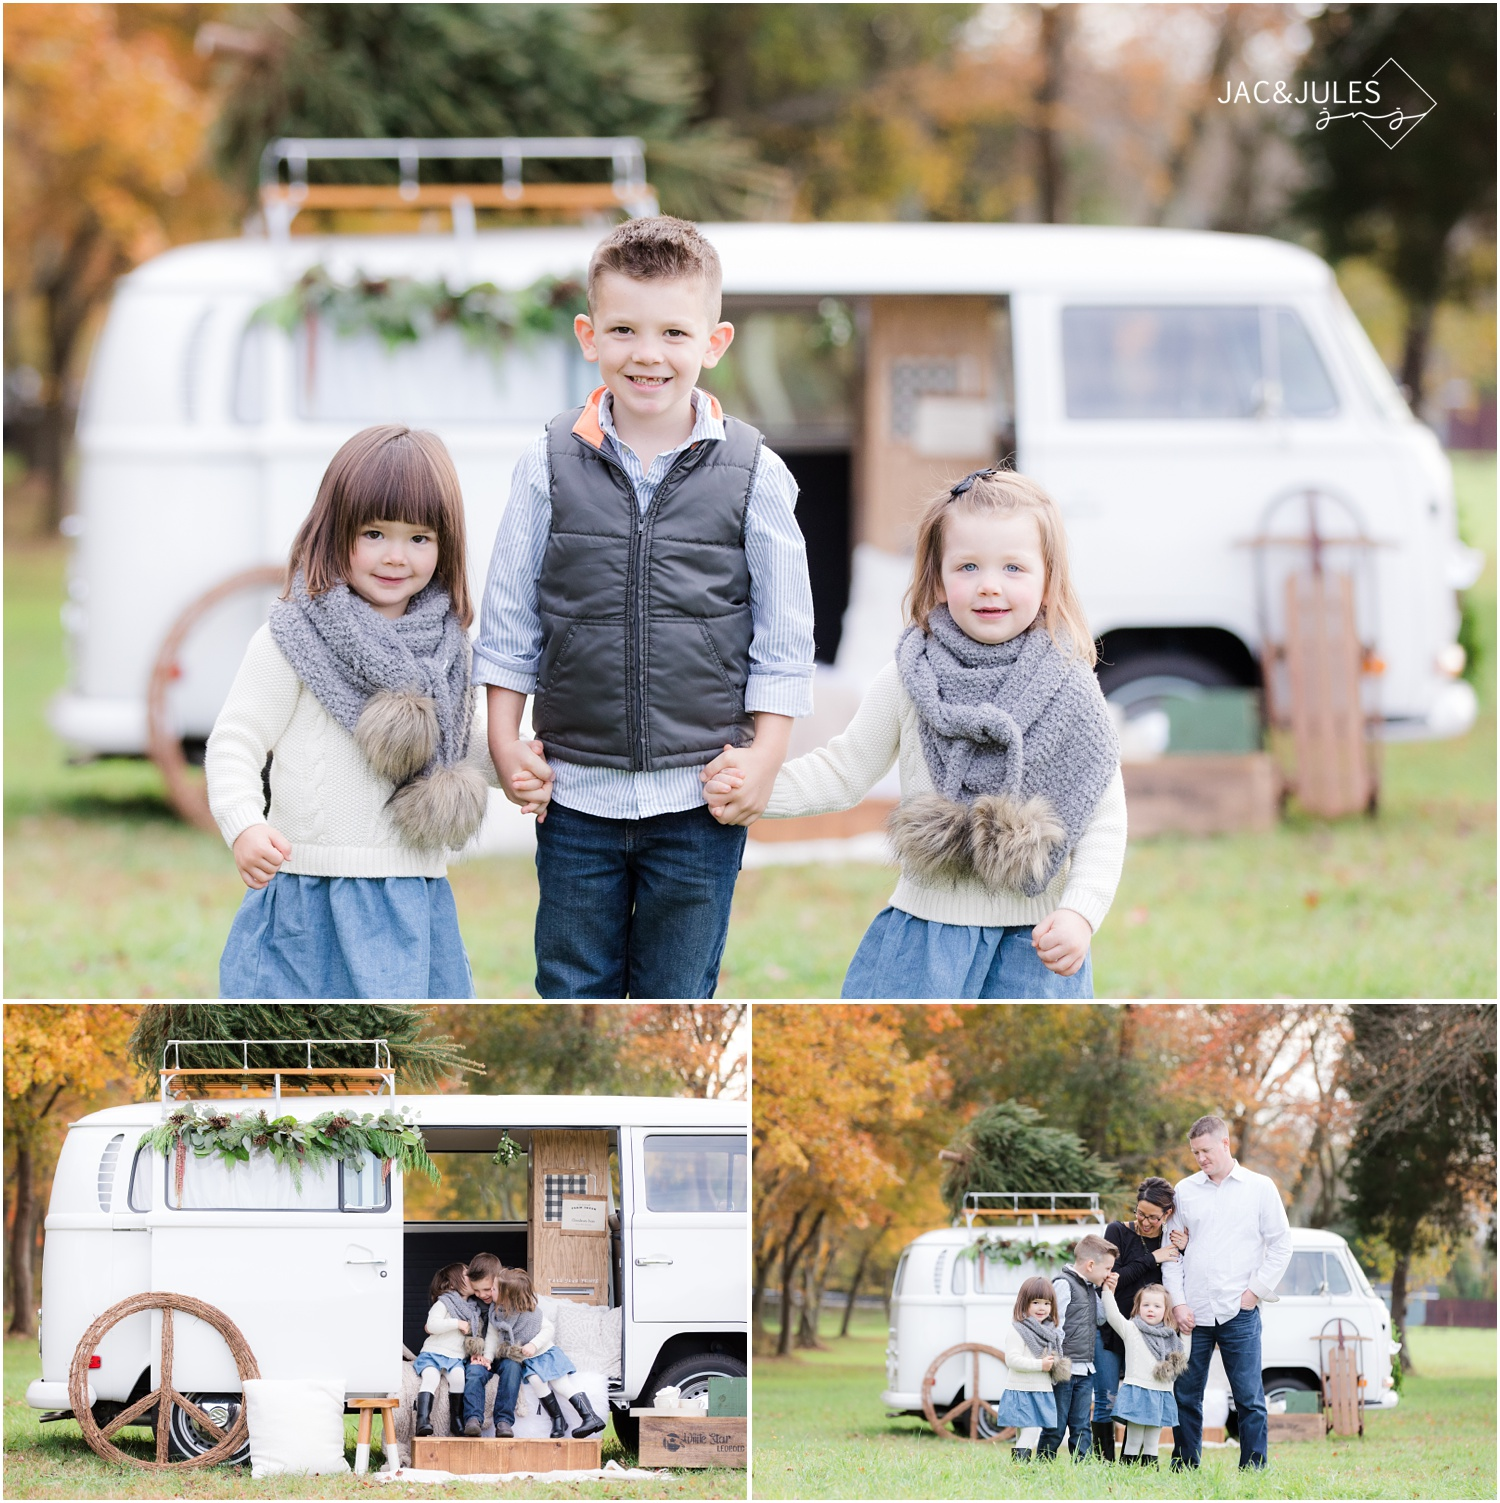 family wardrobe inspiration for holiday photos with vintage VW bus in Freehold, NJ.